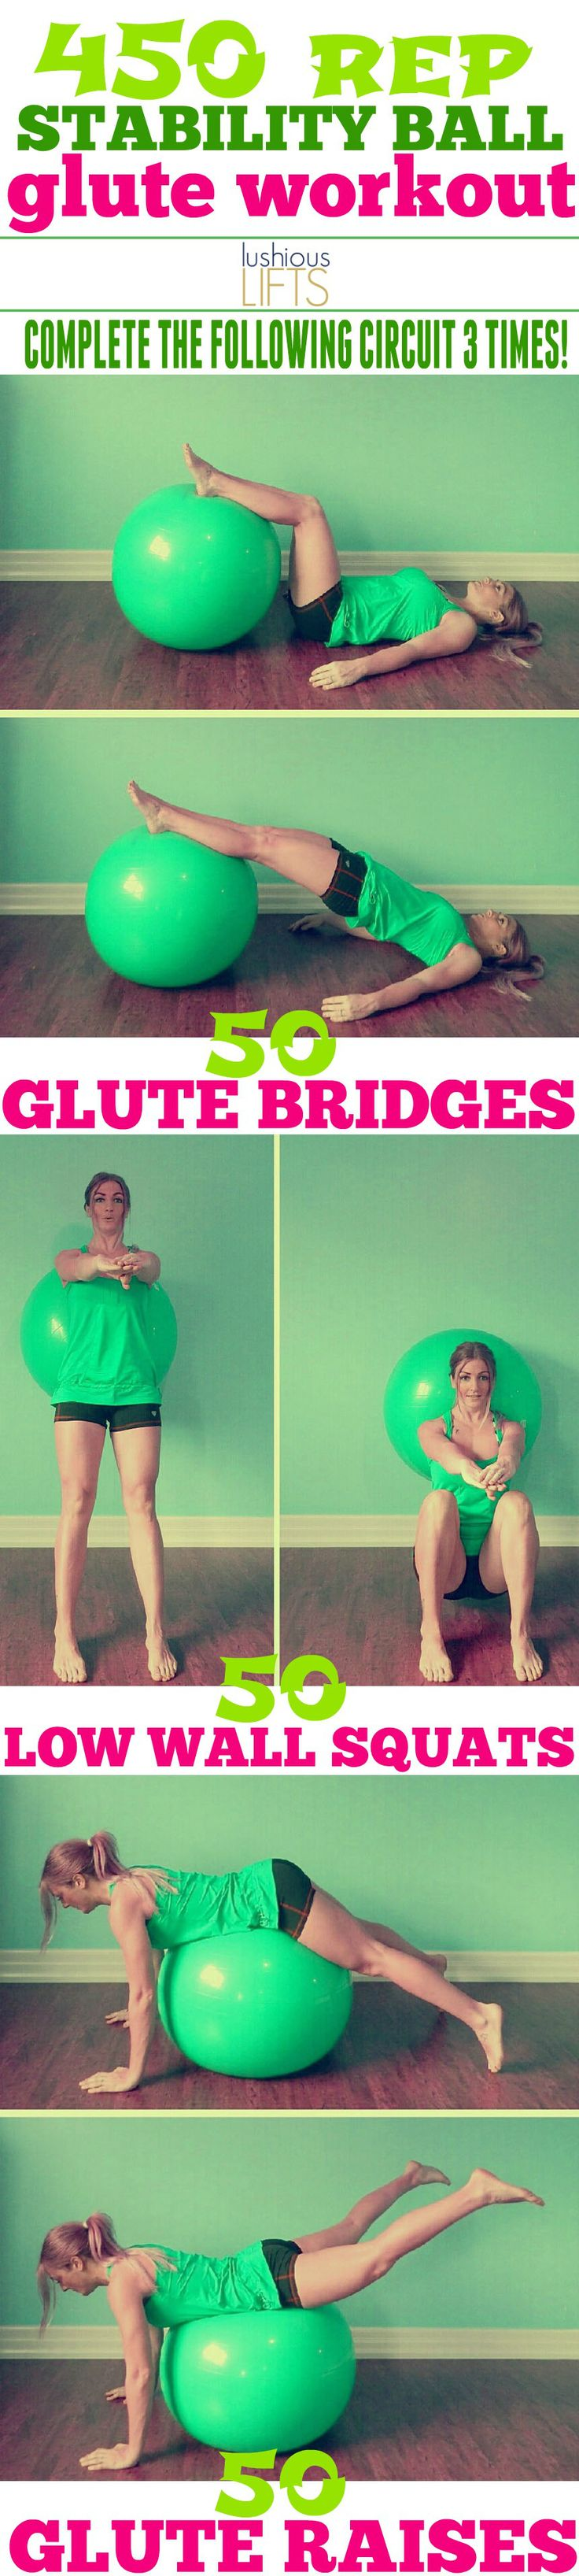 450 reps closer to creating a nice butt! {Stability Ball Glute Workout}